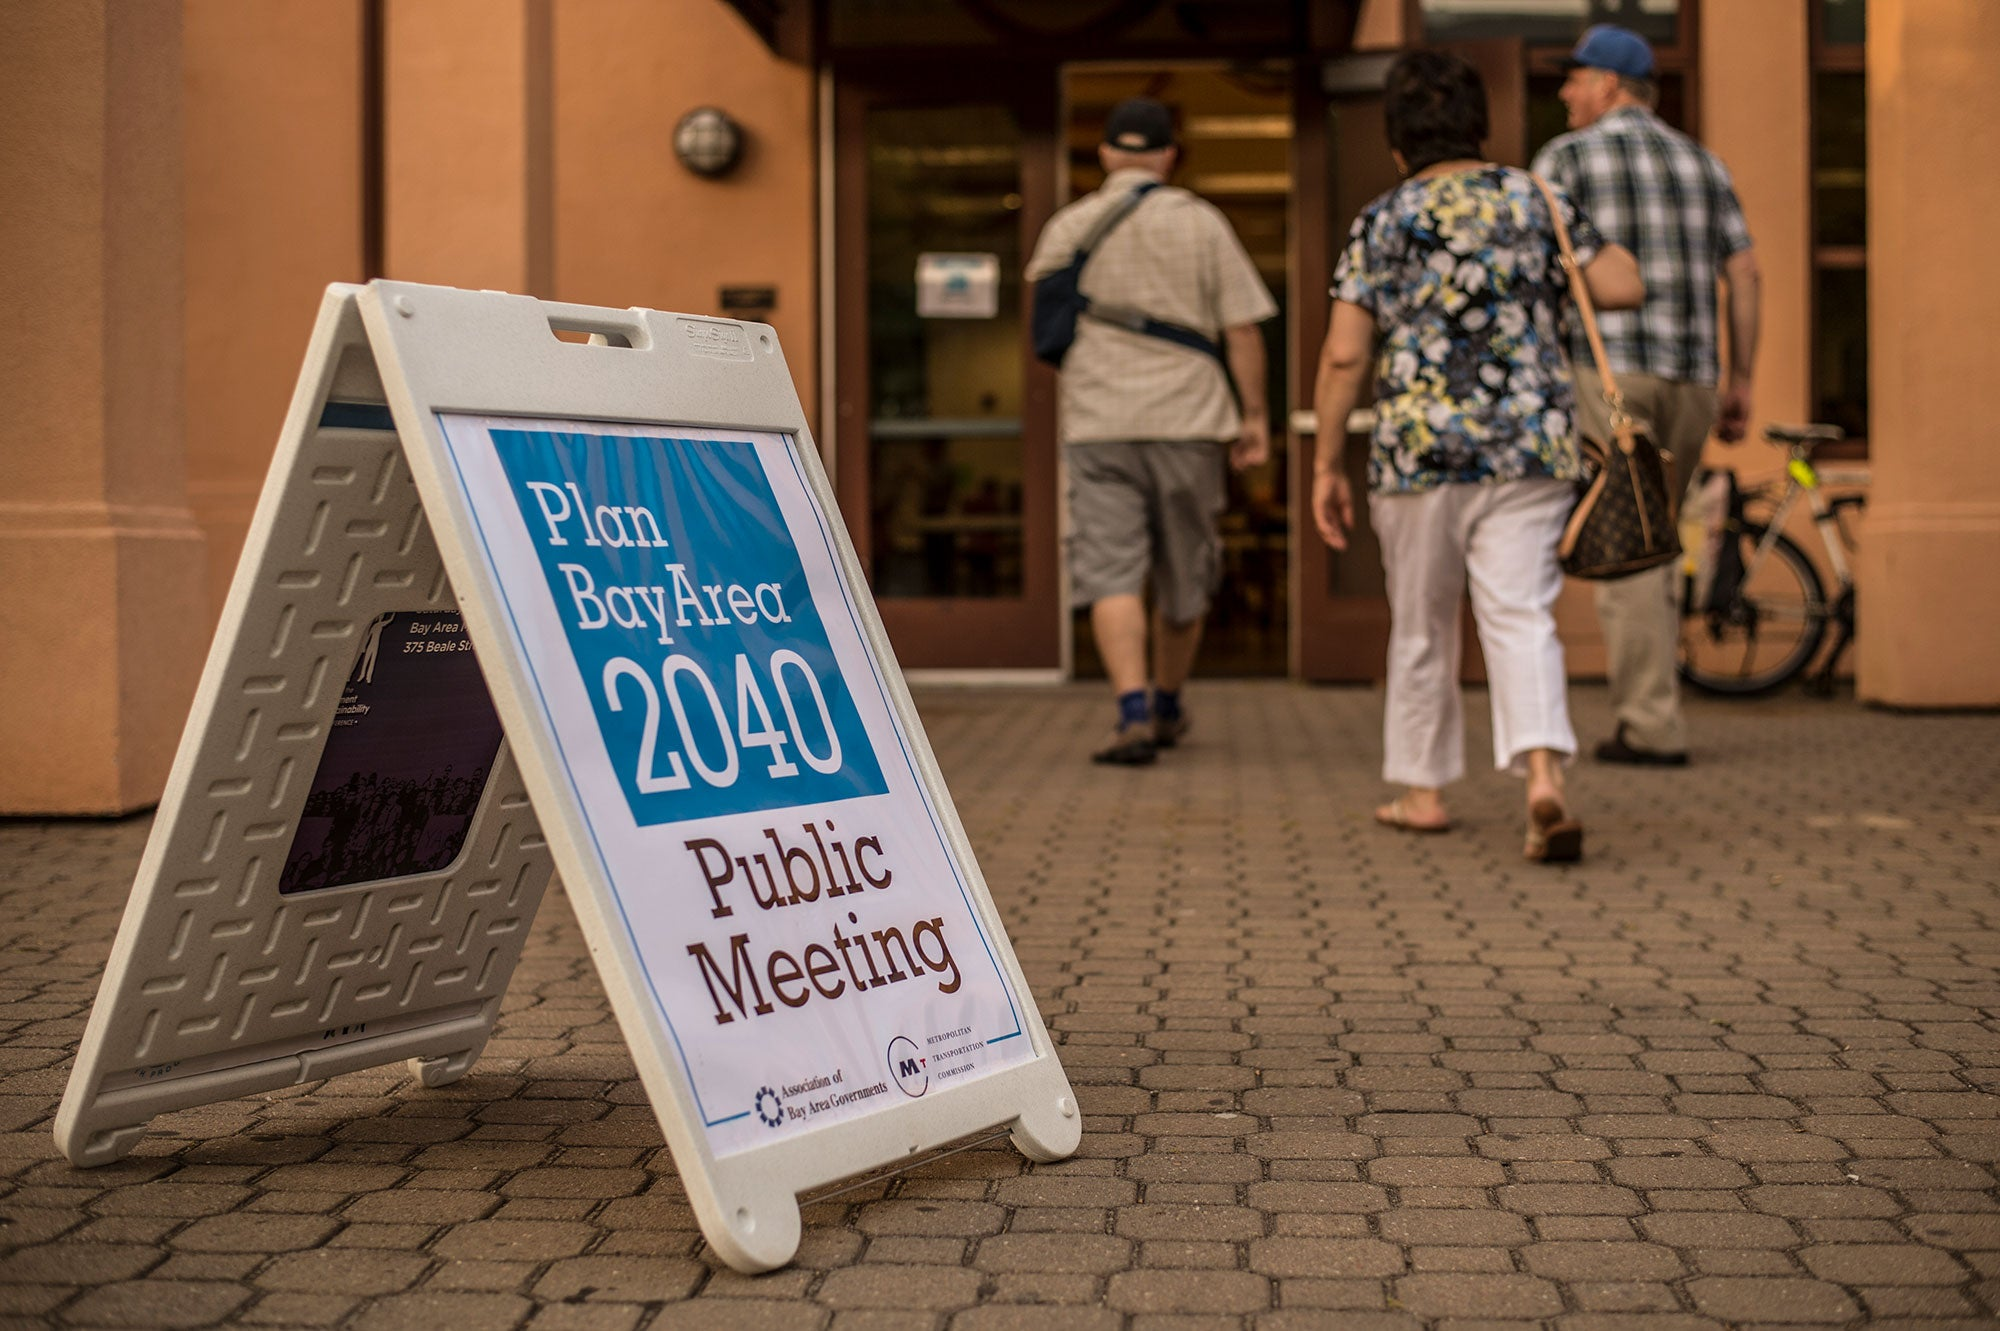 In the foreground a sandwich board advertising the Plan Bay Area 2040 public meeting is displayed, with three adults walking into the building in the background.